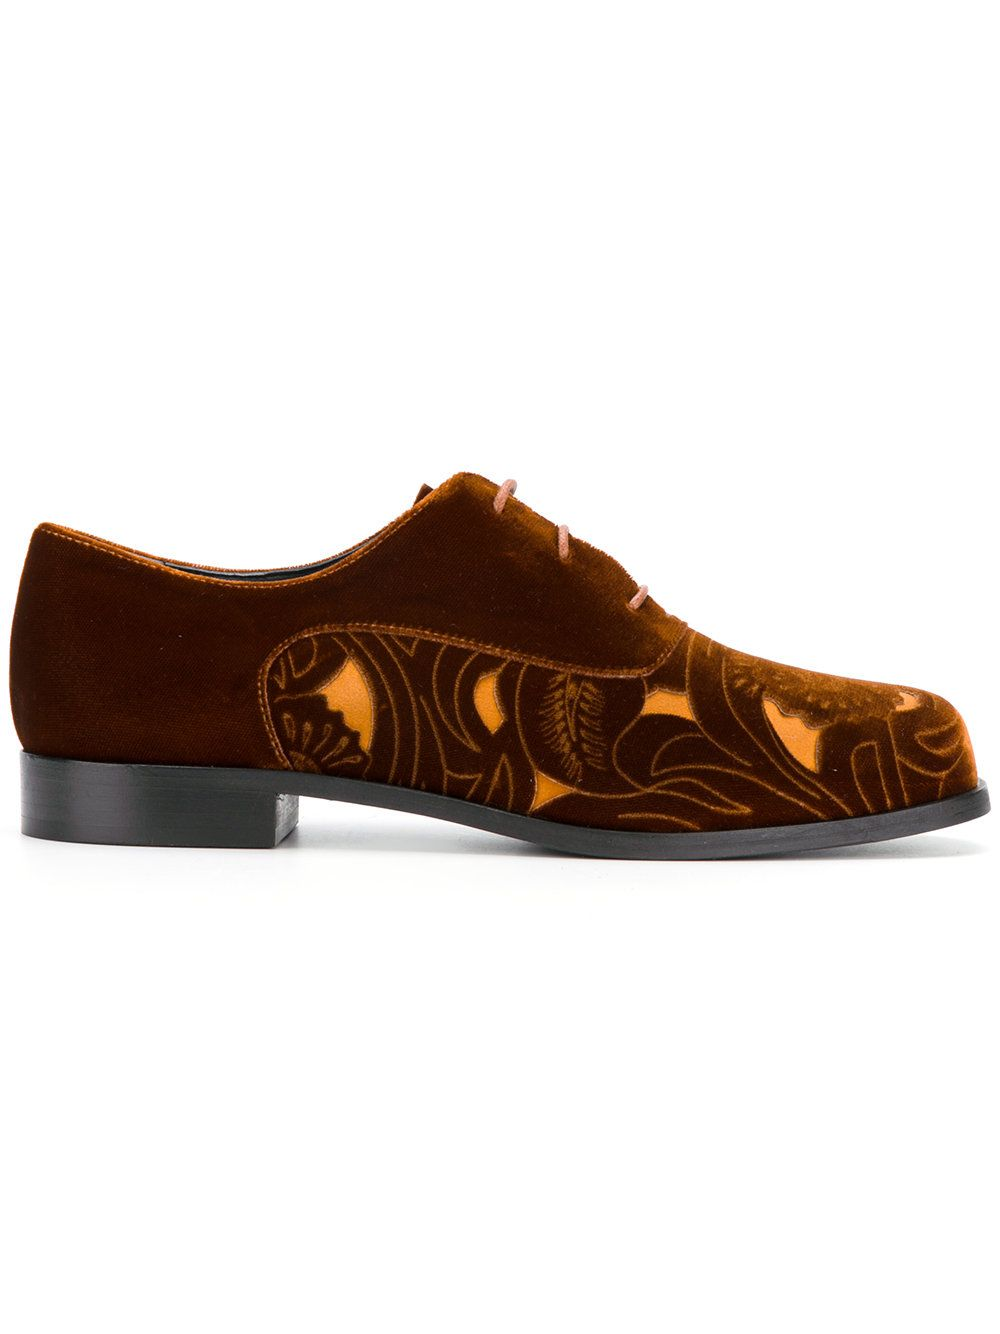 Emporio Armani cut-out panel lace-up shoes free shipping excellent cheap manchester great sale cost sale online free shipping wholesale price UsaRktWD